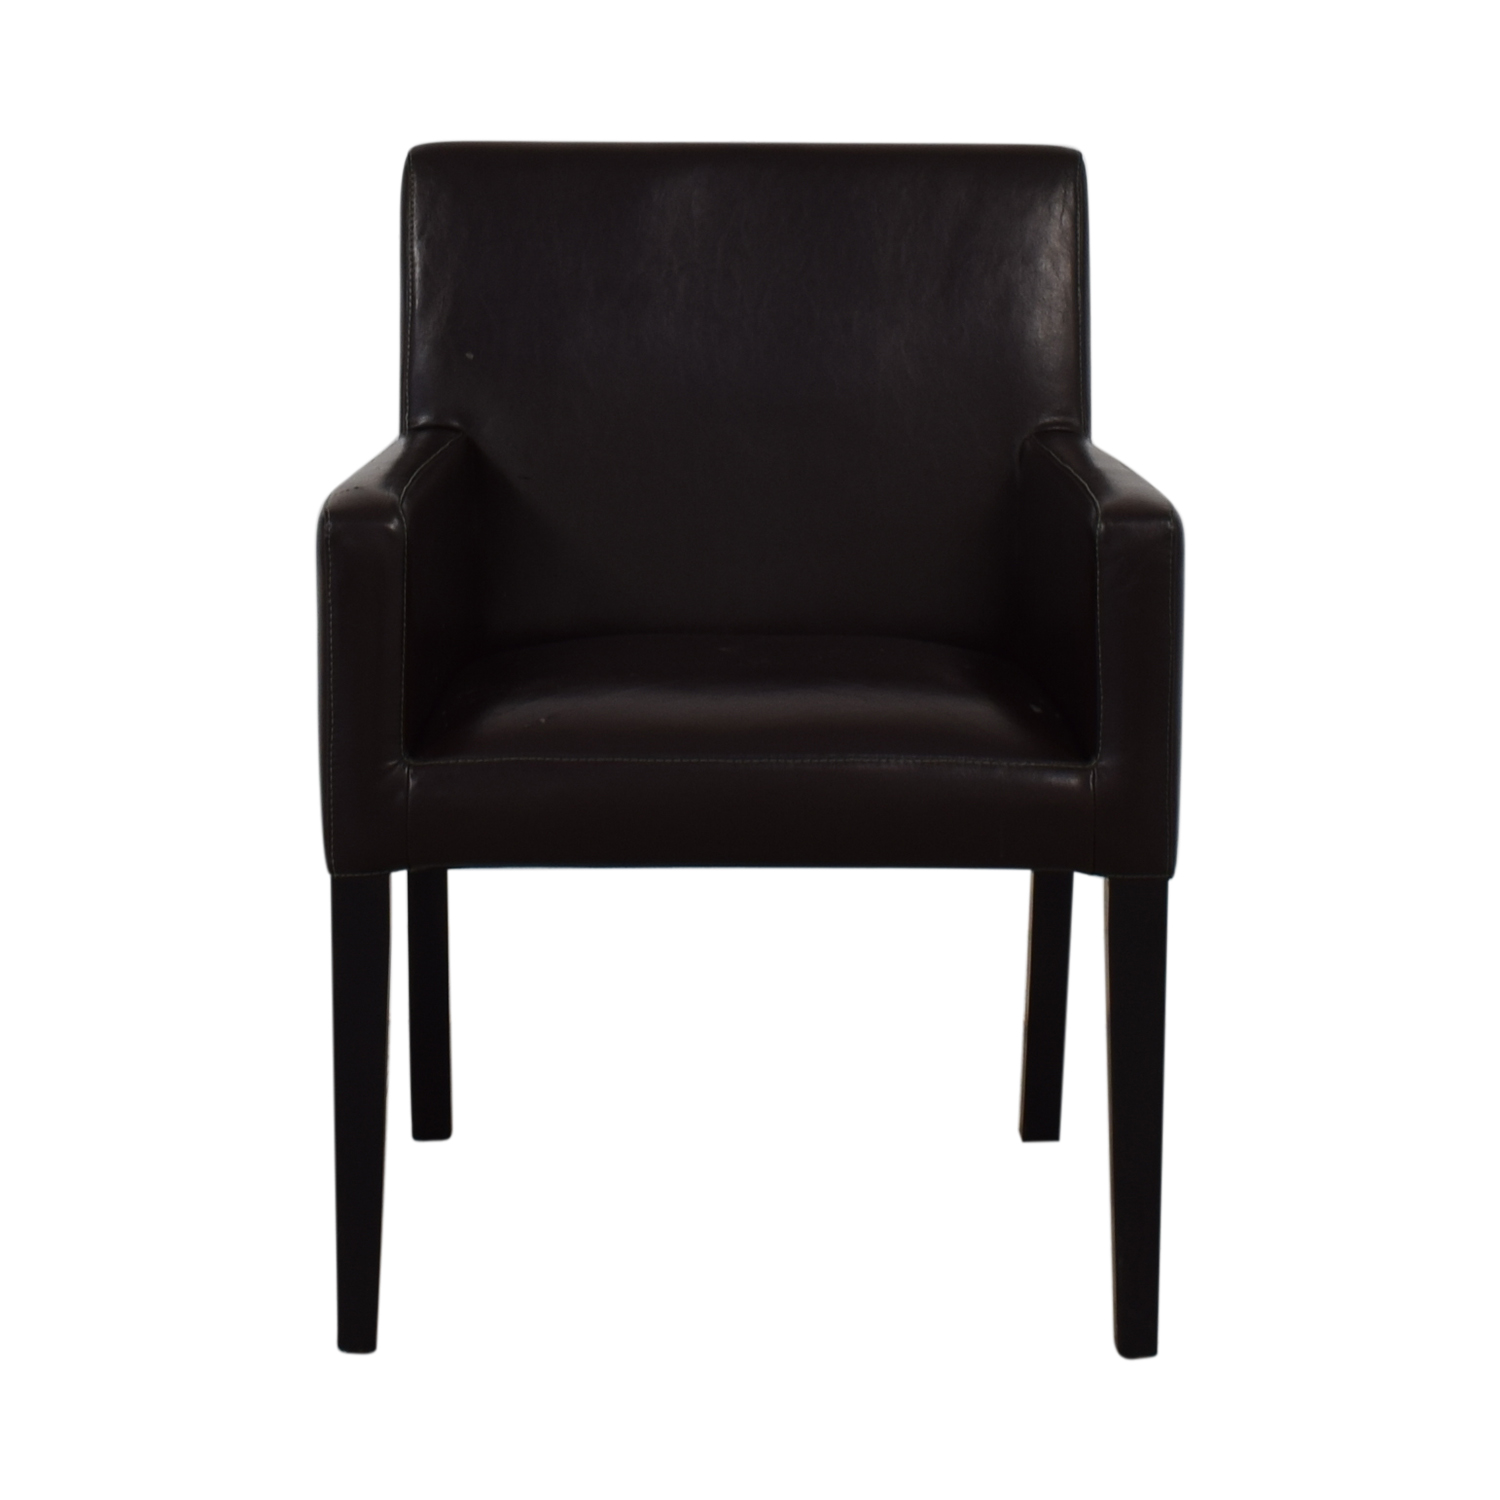 buy Crate & Barrel Brown Accent Chair Crate & Barrel Accent Chairs